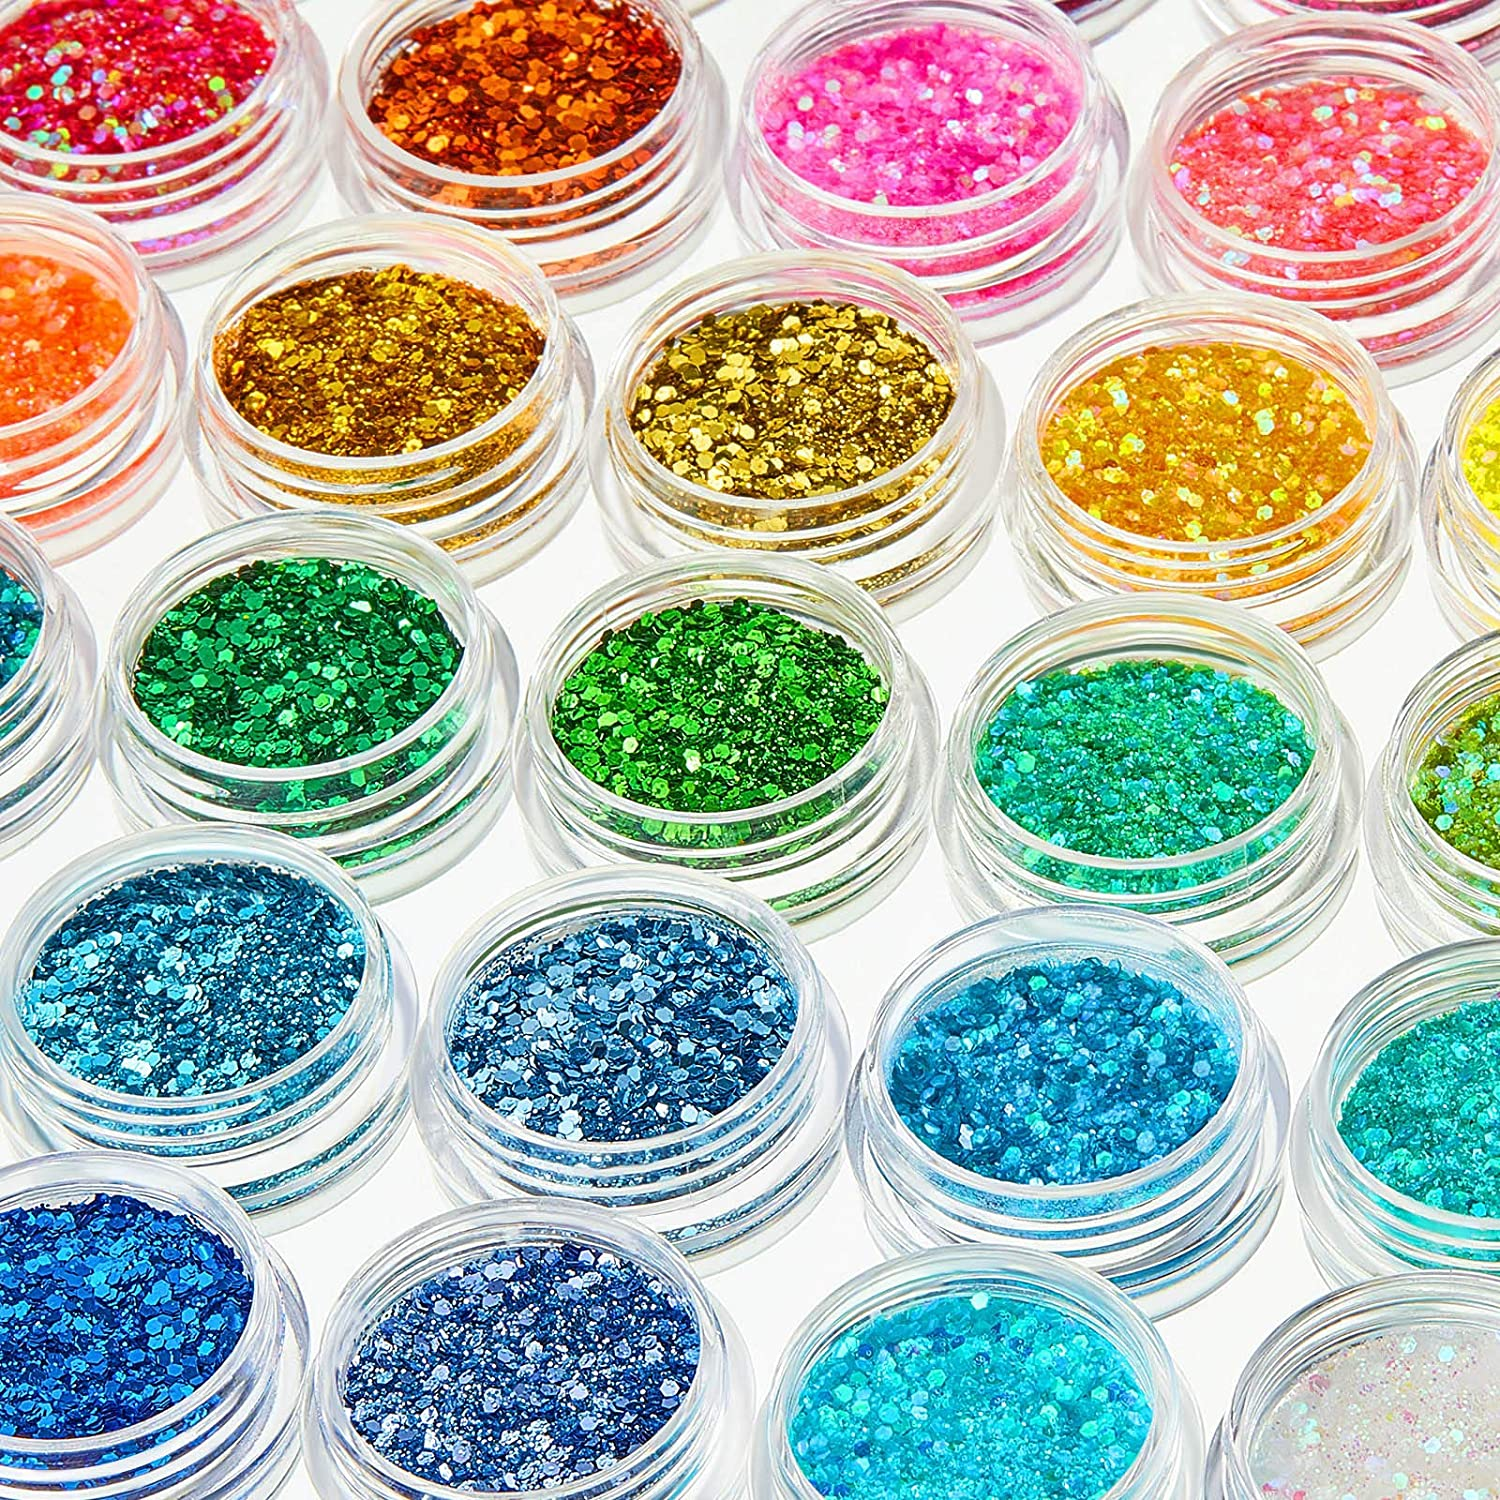 36 Boxes Chunky Glitter Nail Sequins Holographic Chunky Glitter Sequins Cosmetic Laser Iridescent Festival Powder Sequins Craft Glitter Nail Decor for Face Eye Hair Nail Art Design, 36 Colors